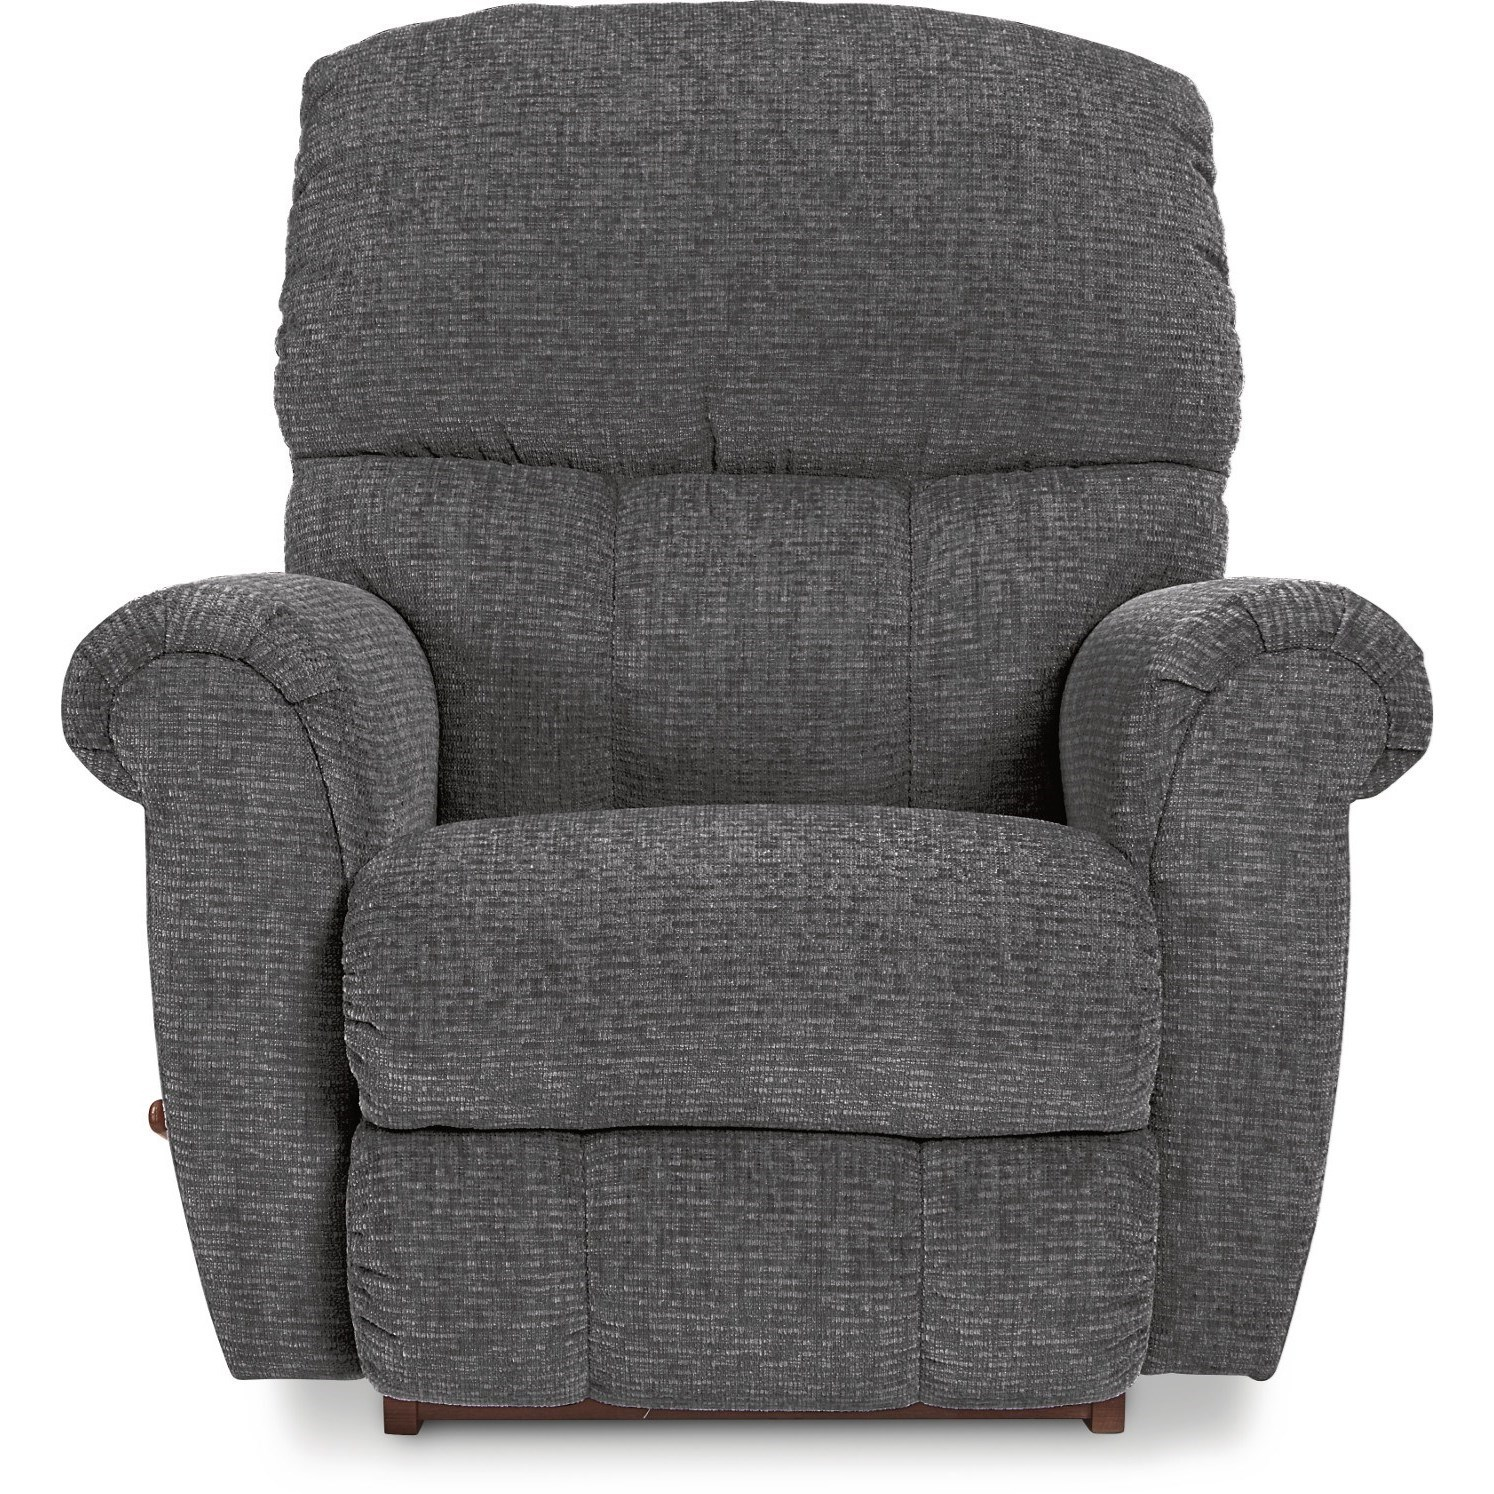 Briggs RECLINA-WAY®Wall Recliner by La-Z-Boy at Bennett's Furniture and Mattresses